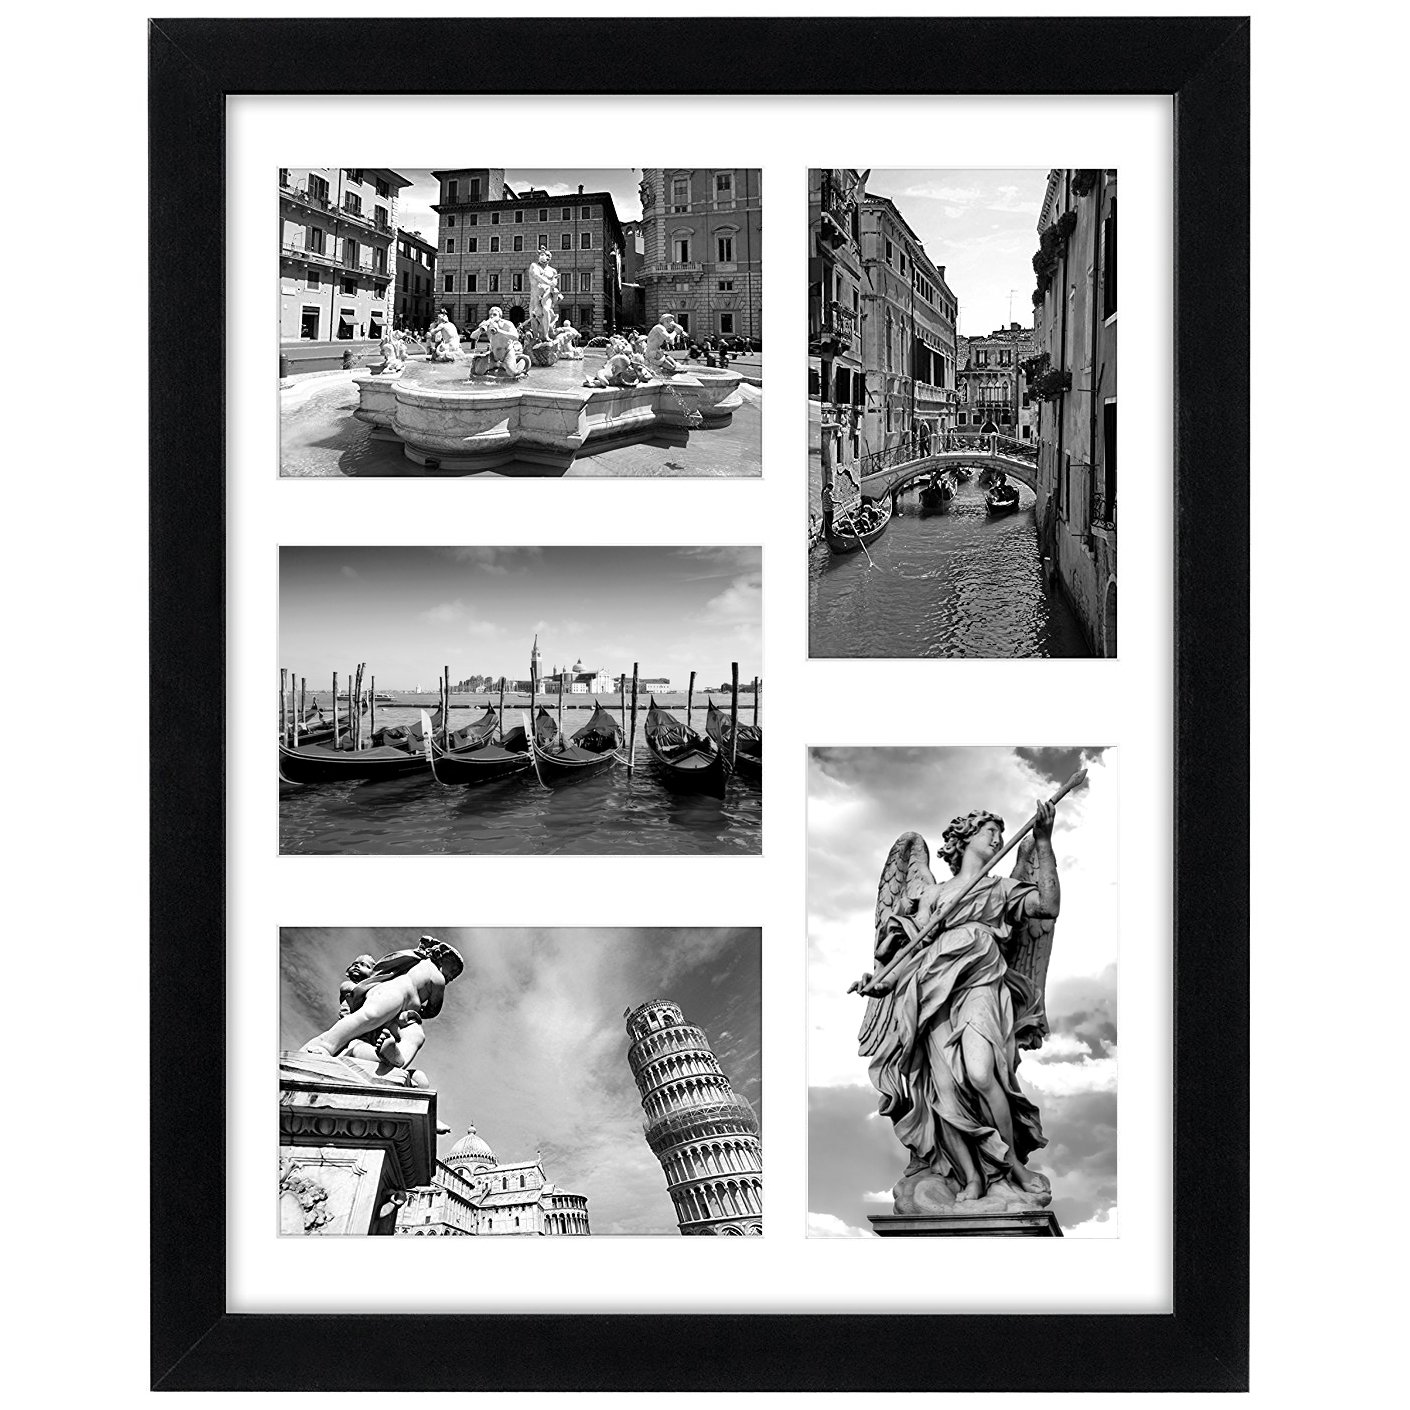 Americanflat 11x14 Collage Picture Frame - Display 5 4x6 Pictures with Mat by Americanflat